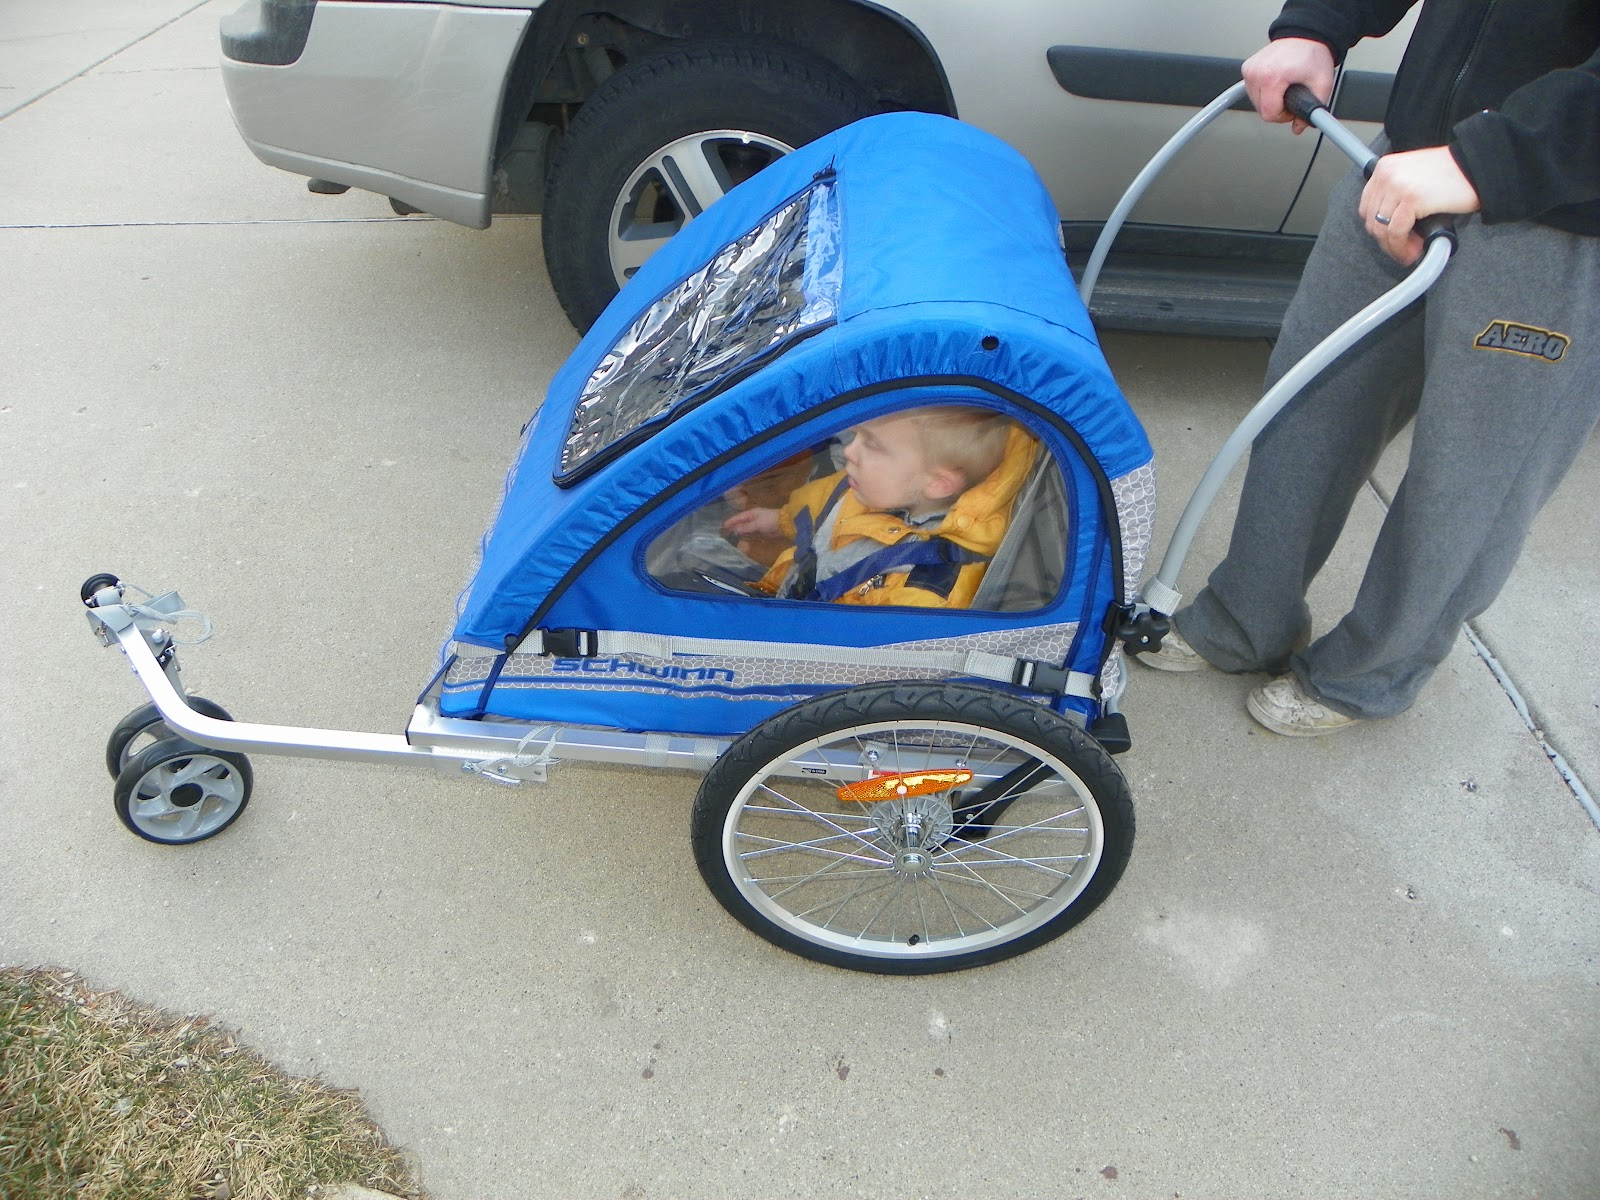 Schwinn Trailblazer Bicycle Trailer Review The Review Stew